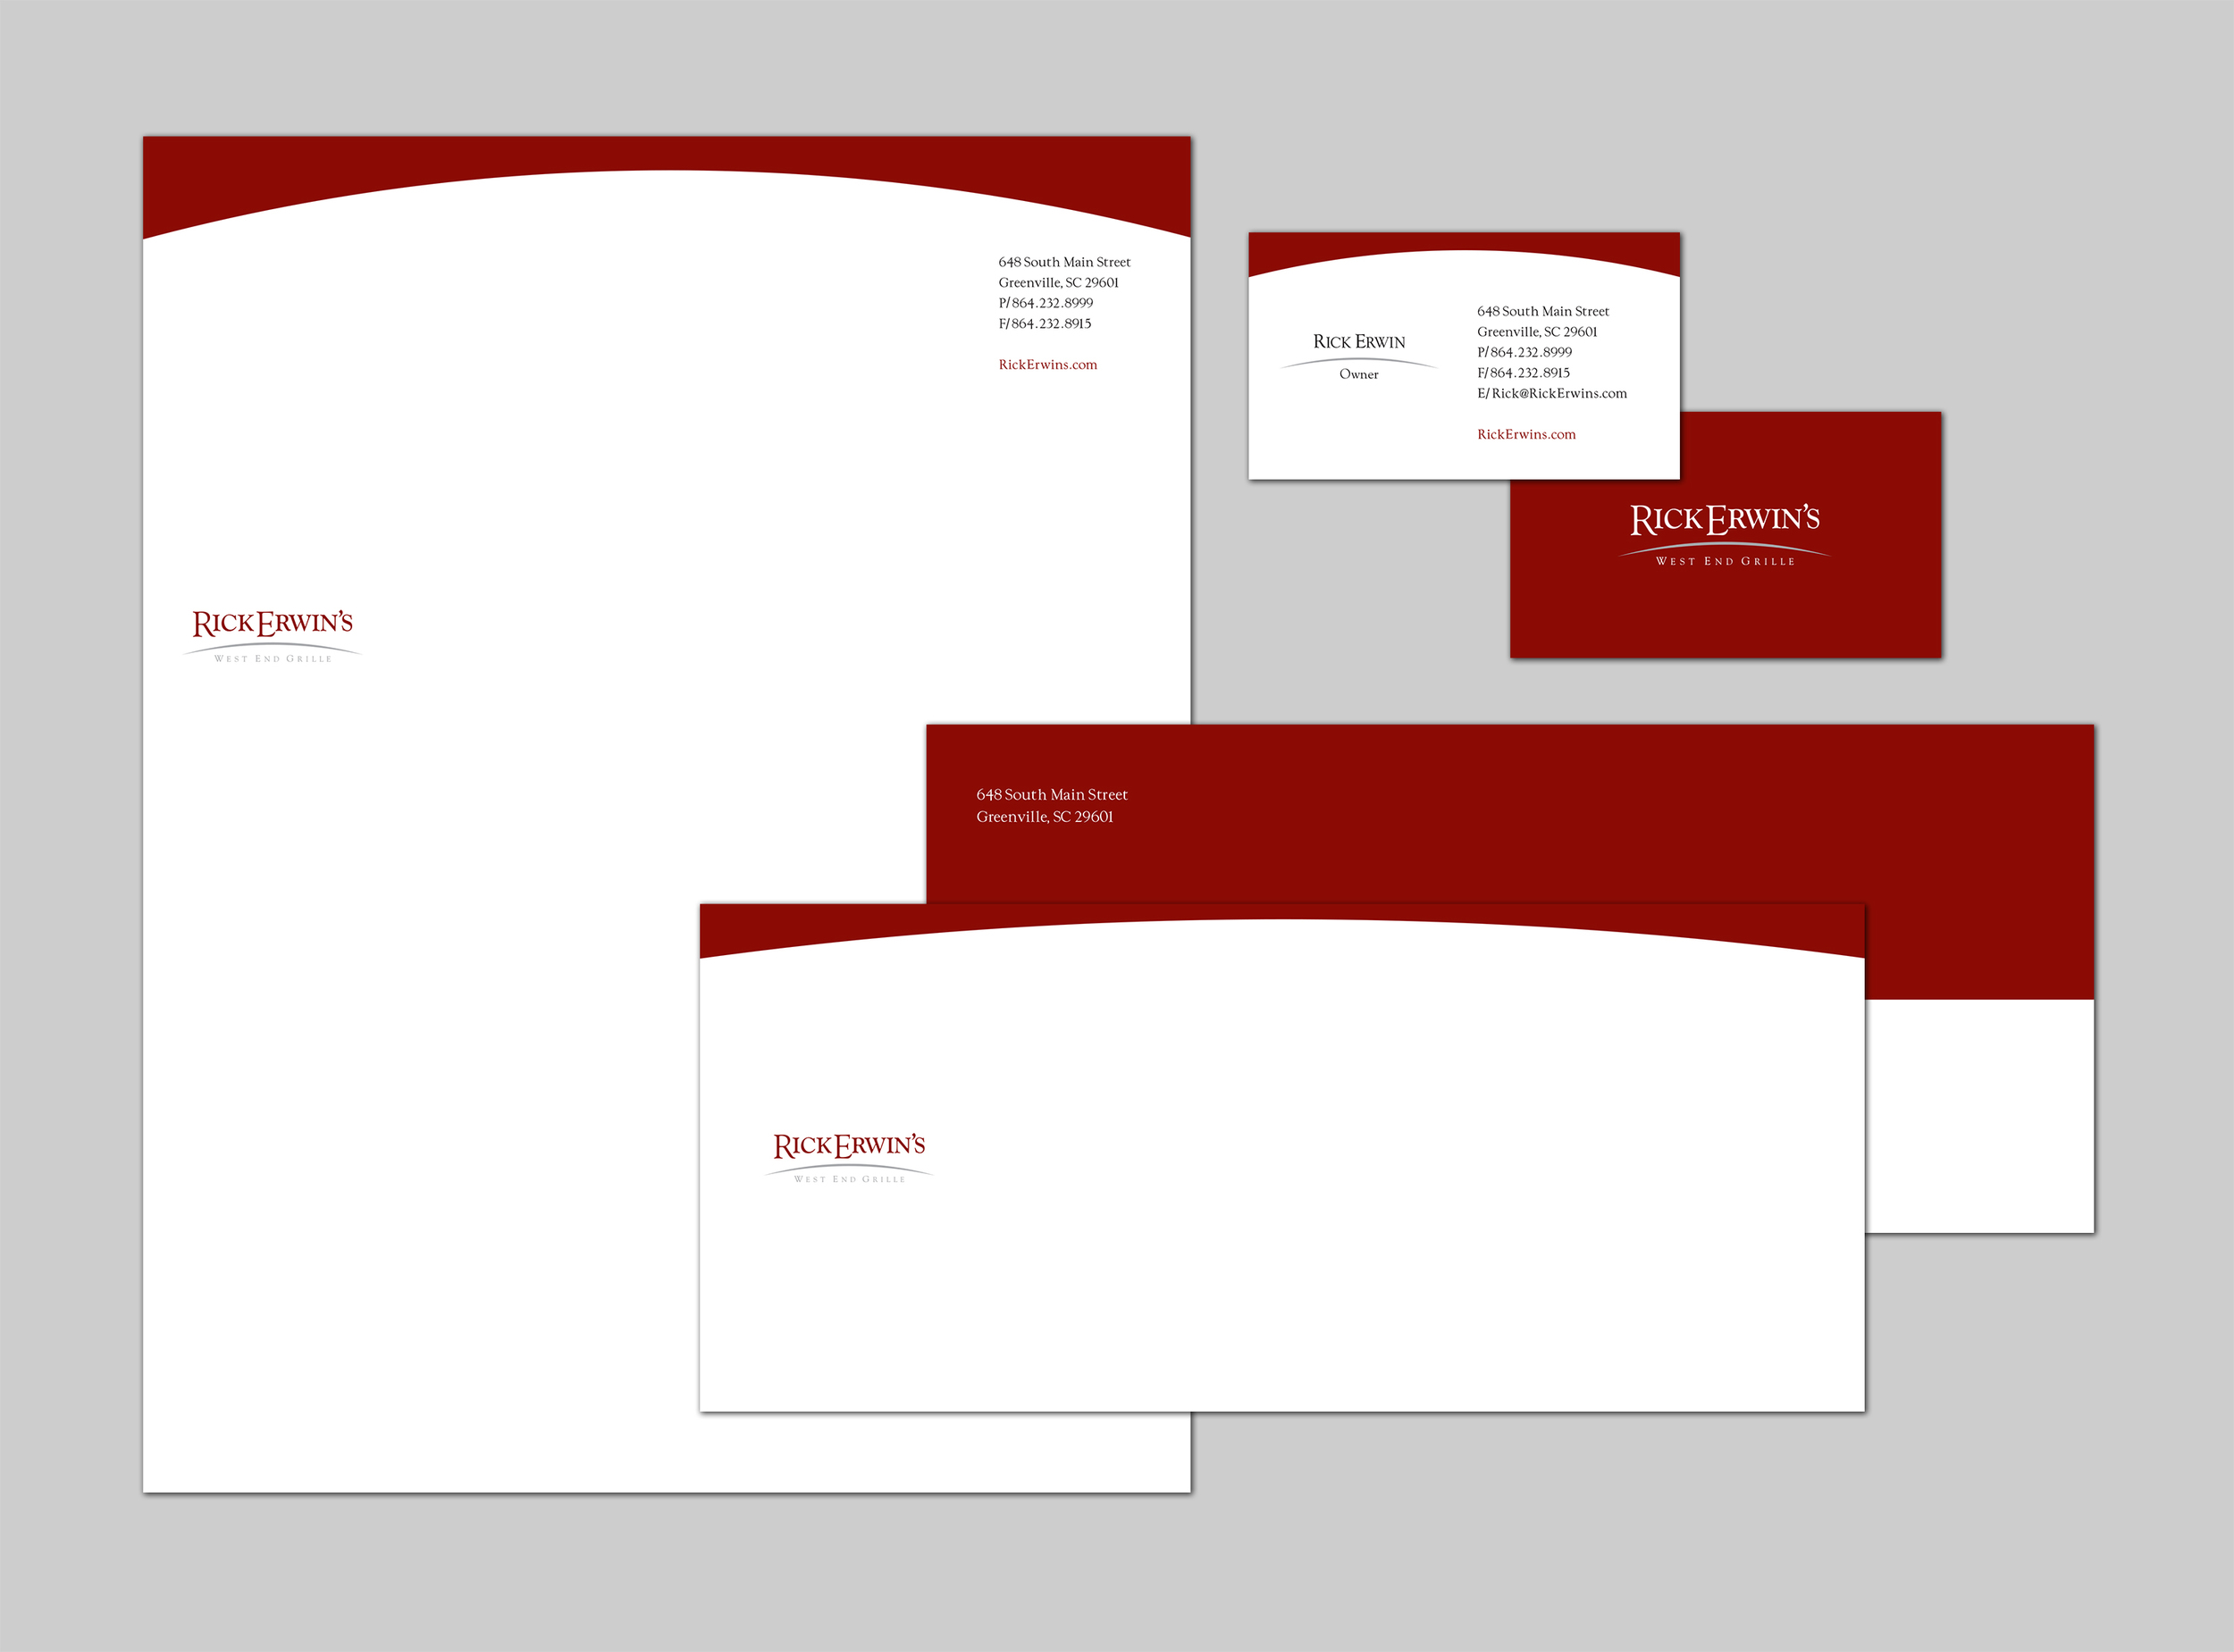 Rick Erwins West End Grille Stationery Package